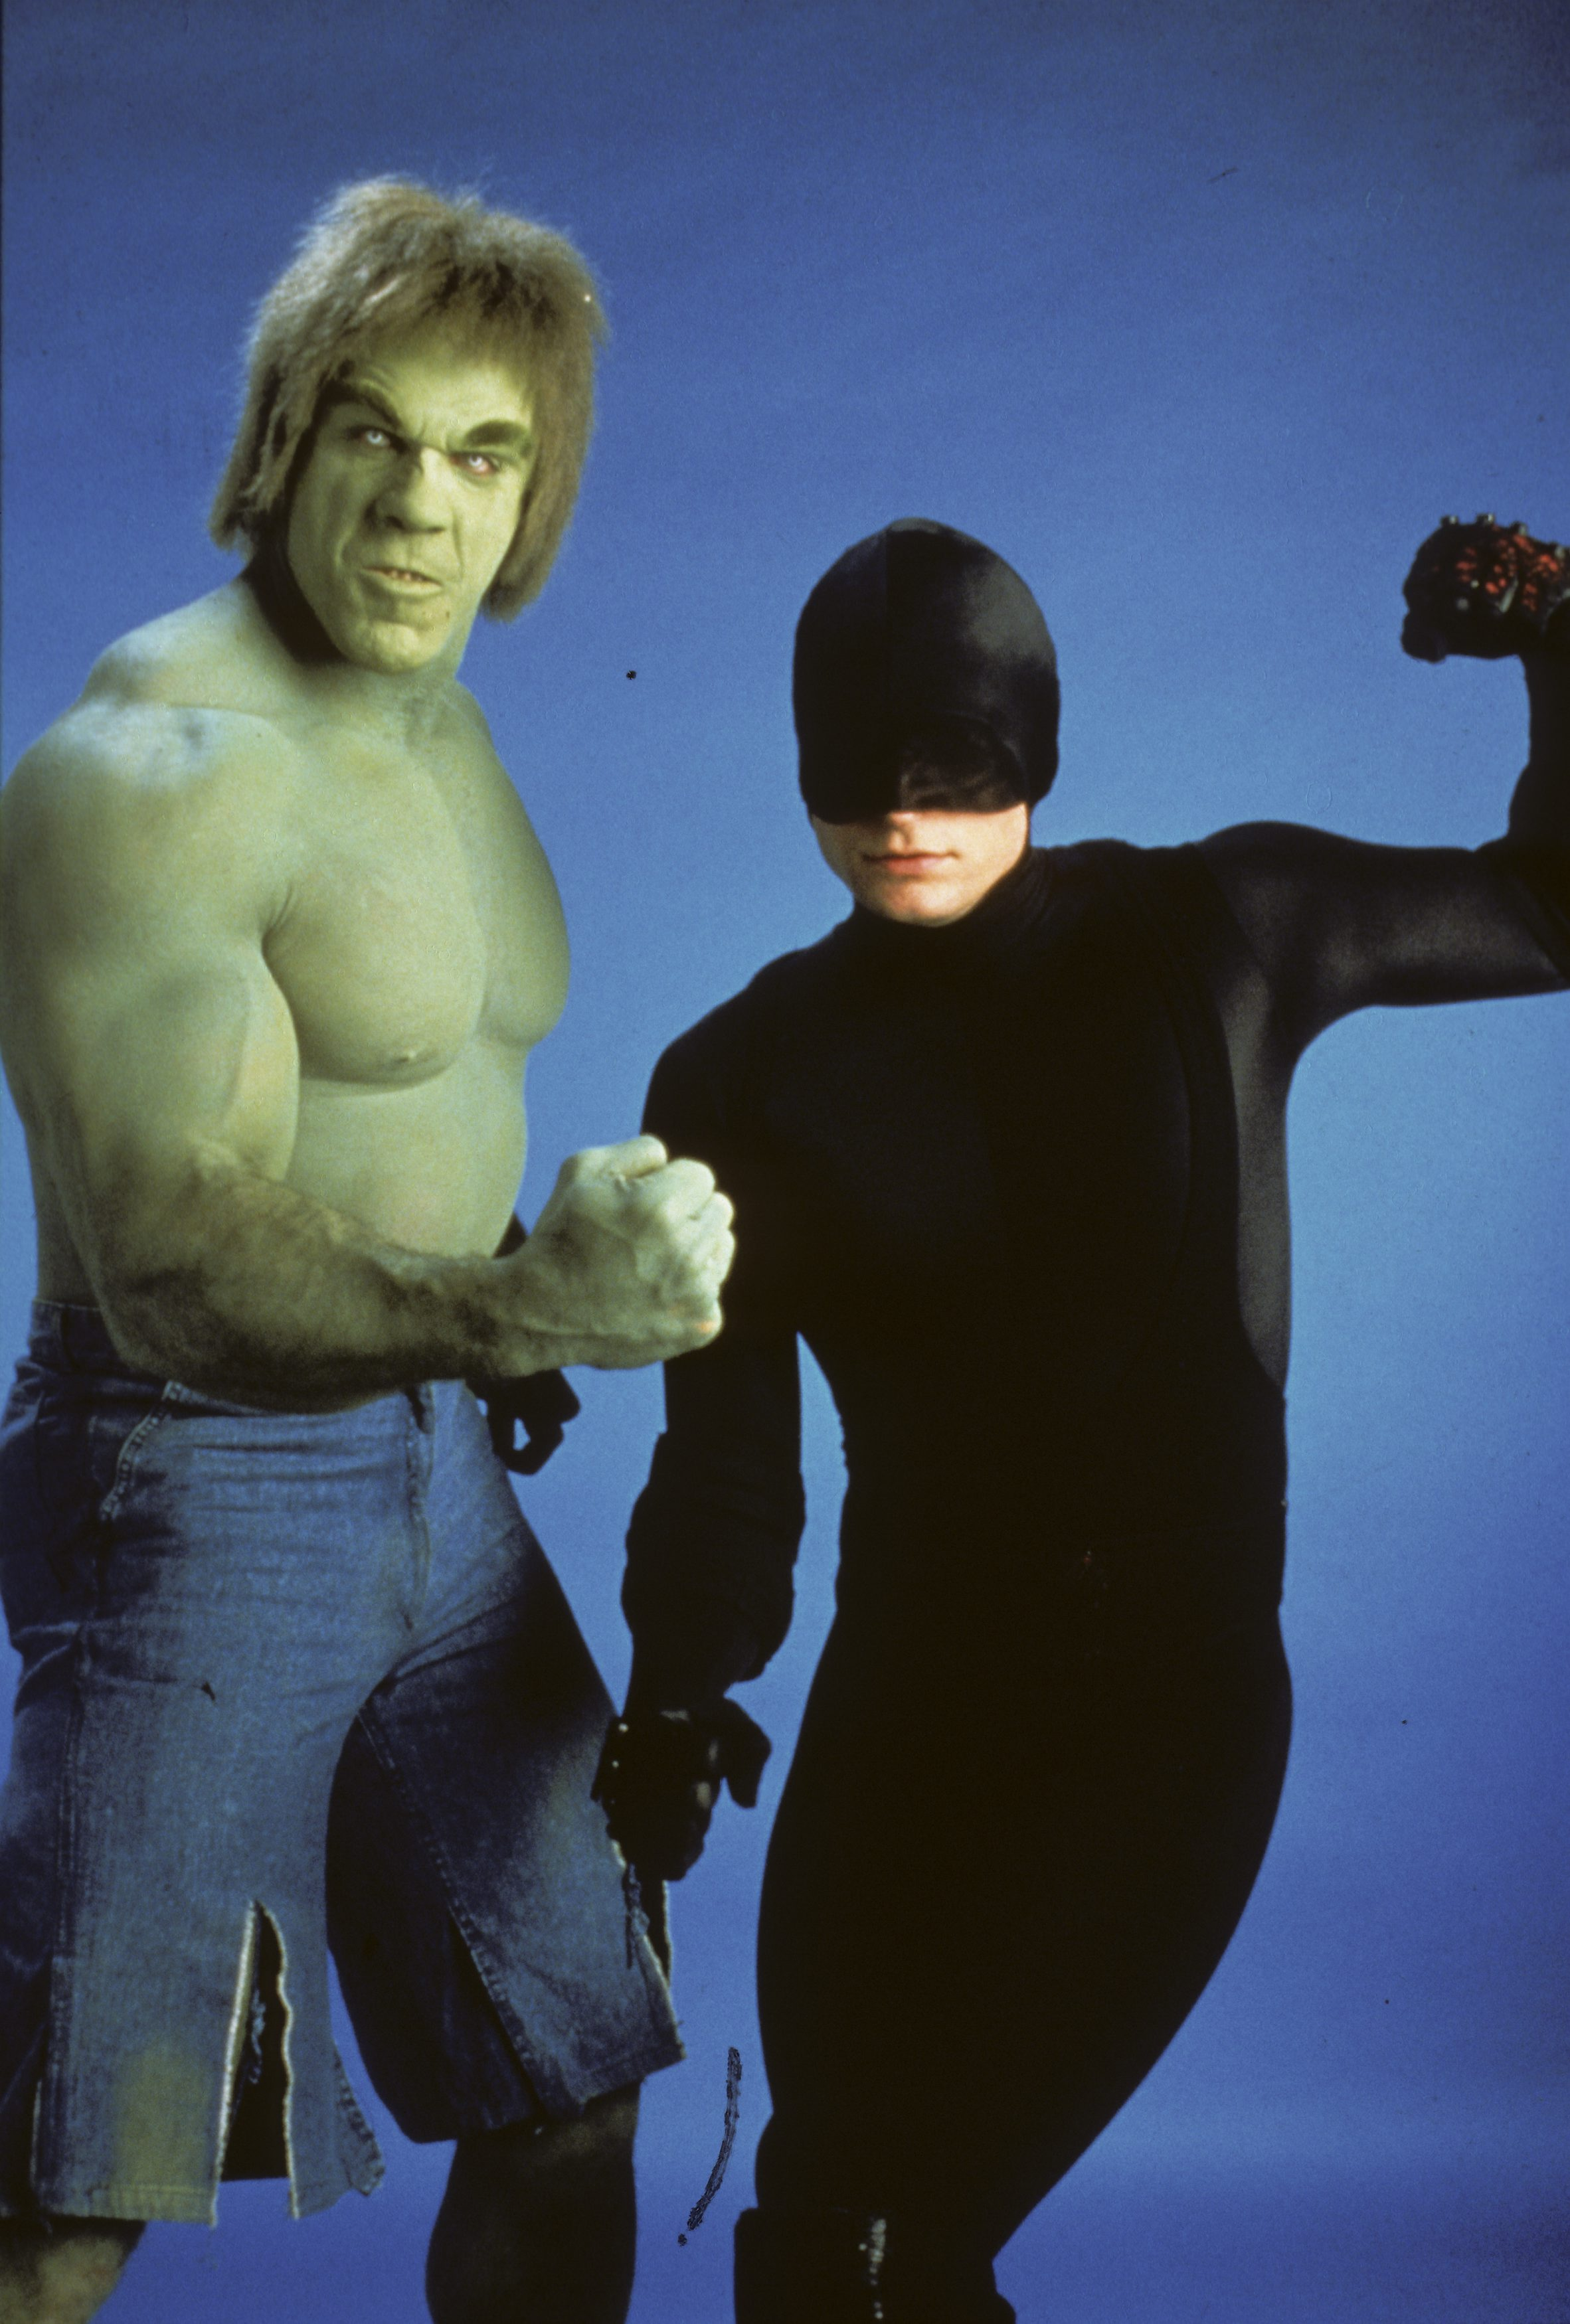 Lou Ferrigno and Rex Smith in The Trial of the Incredible Hulk (1989)